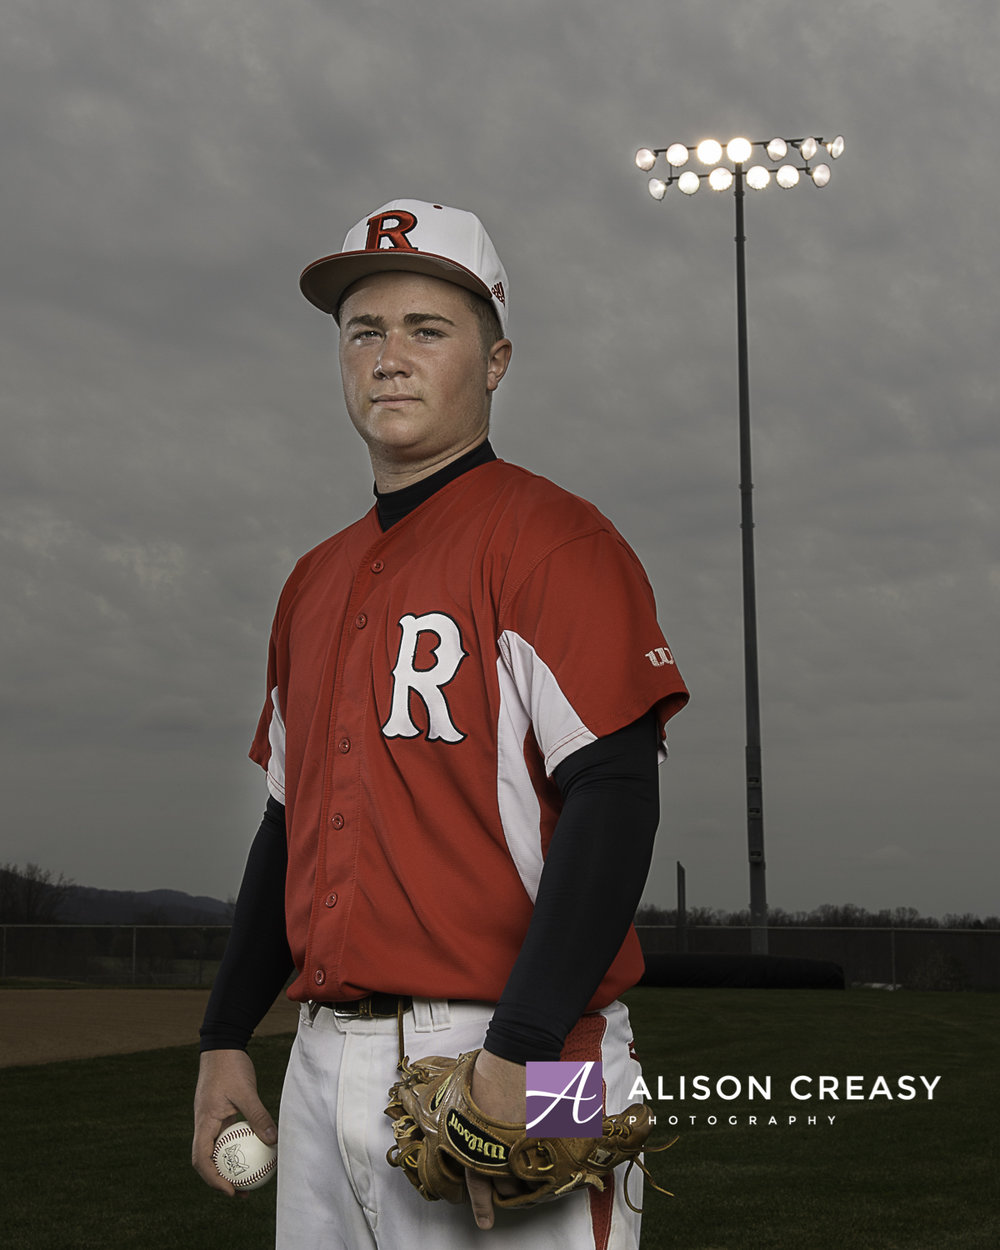 RHS Baseball 2016_AlisonCreasyPhotography2016-95-Edit.jpg